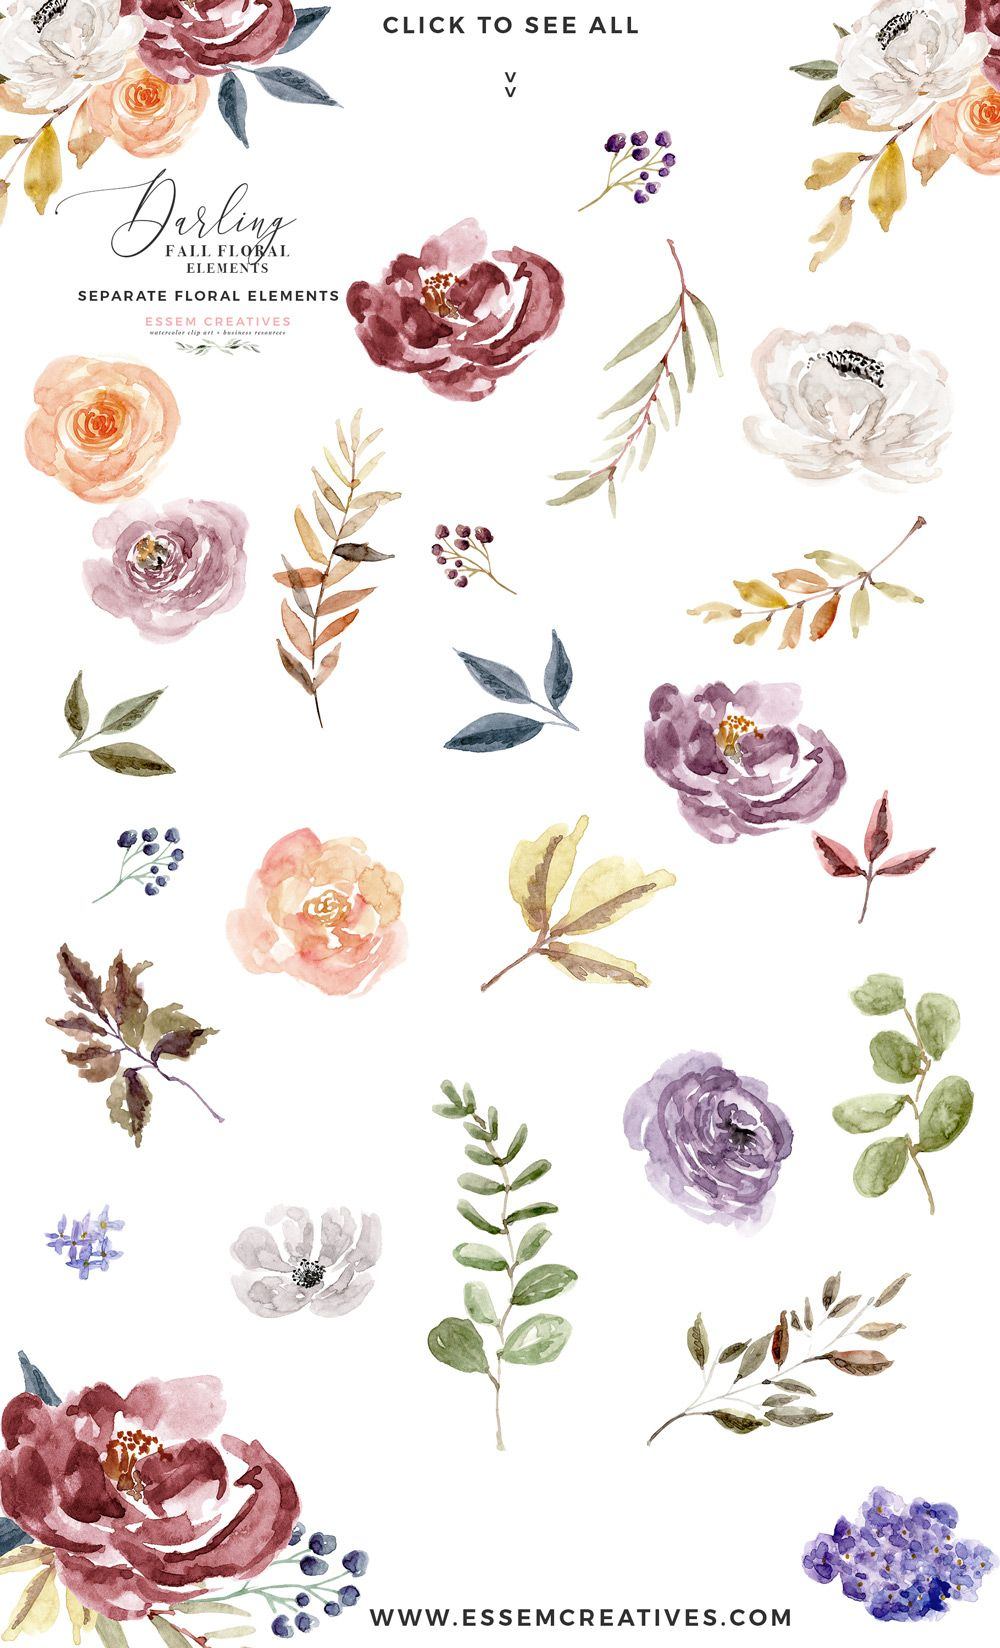 Fall Floral Watercolor Clipart Burgundy Rose Gold Geometric Floral Frames Floral Watercolor Watercolor Flowers Watercolor Clipart